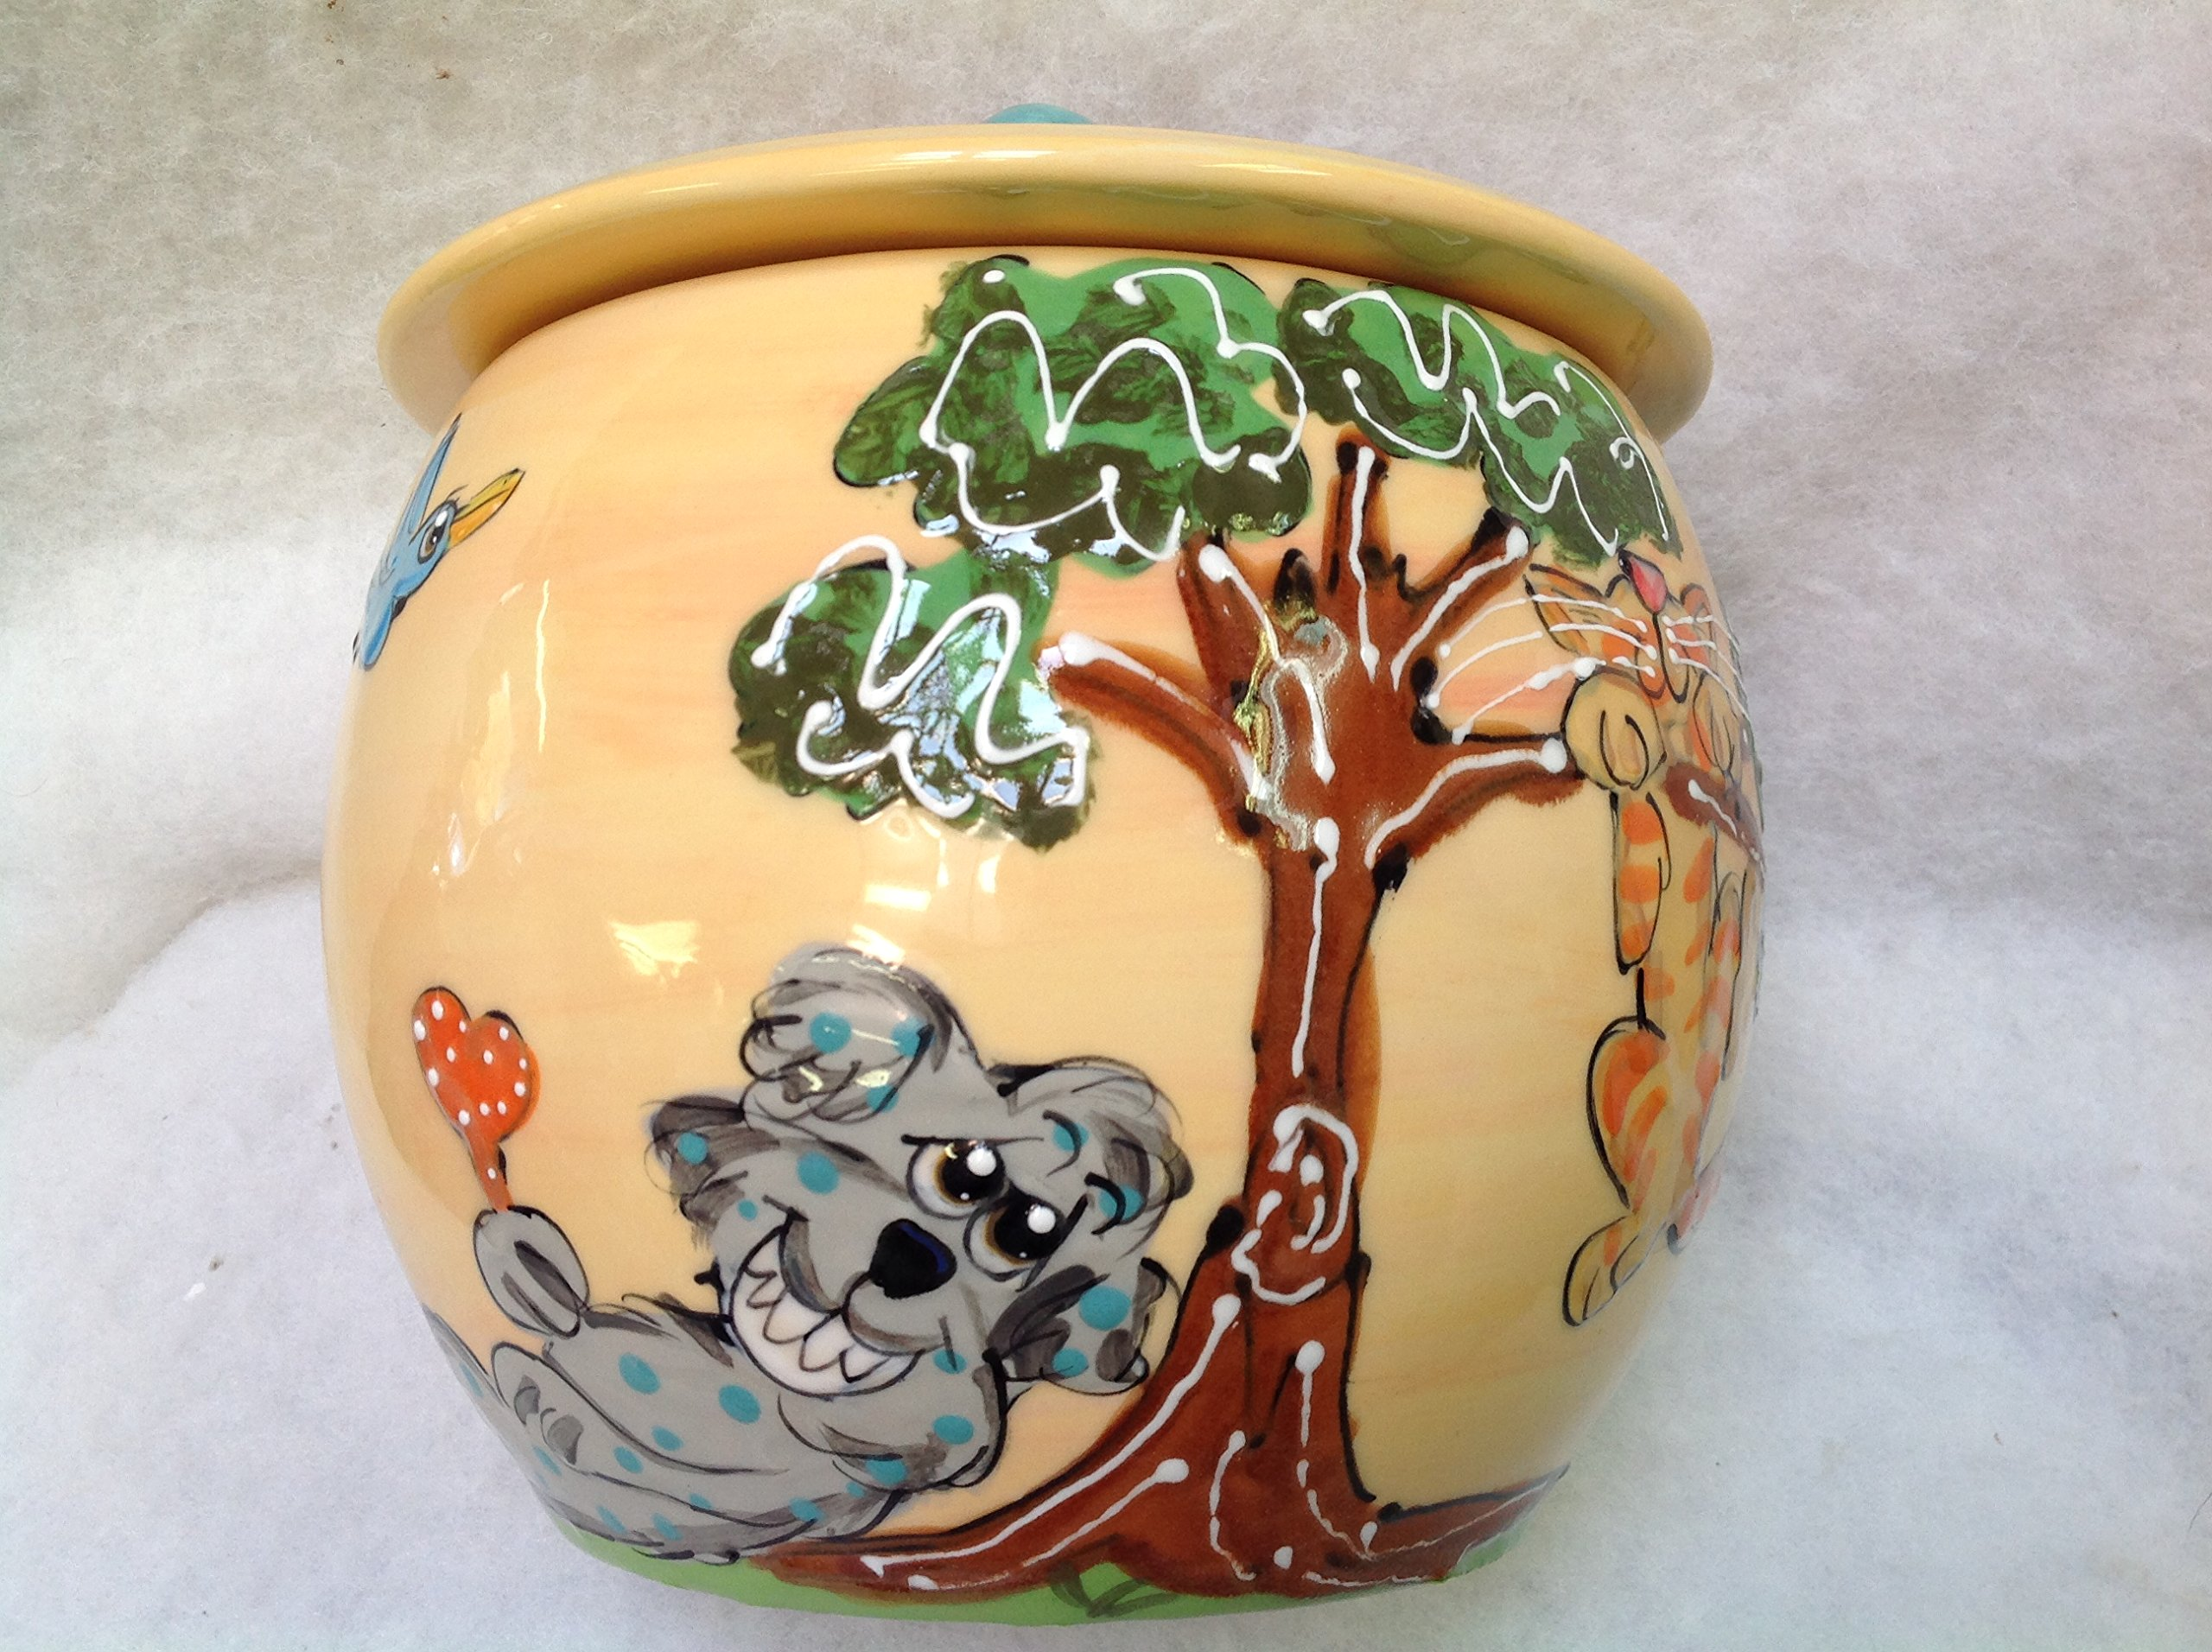 Poodle Treat Jar. Personalized at no Charge. Signed by Artist, Debby Carman.